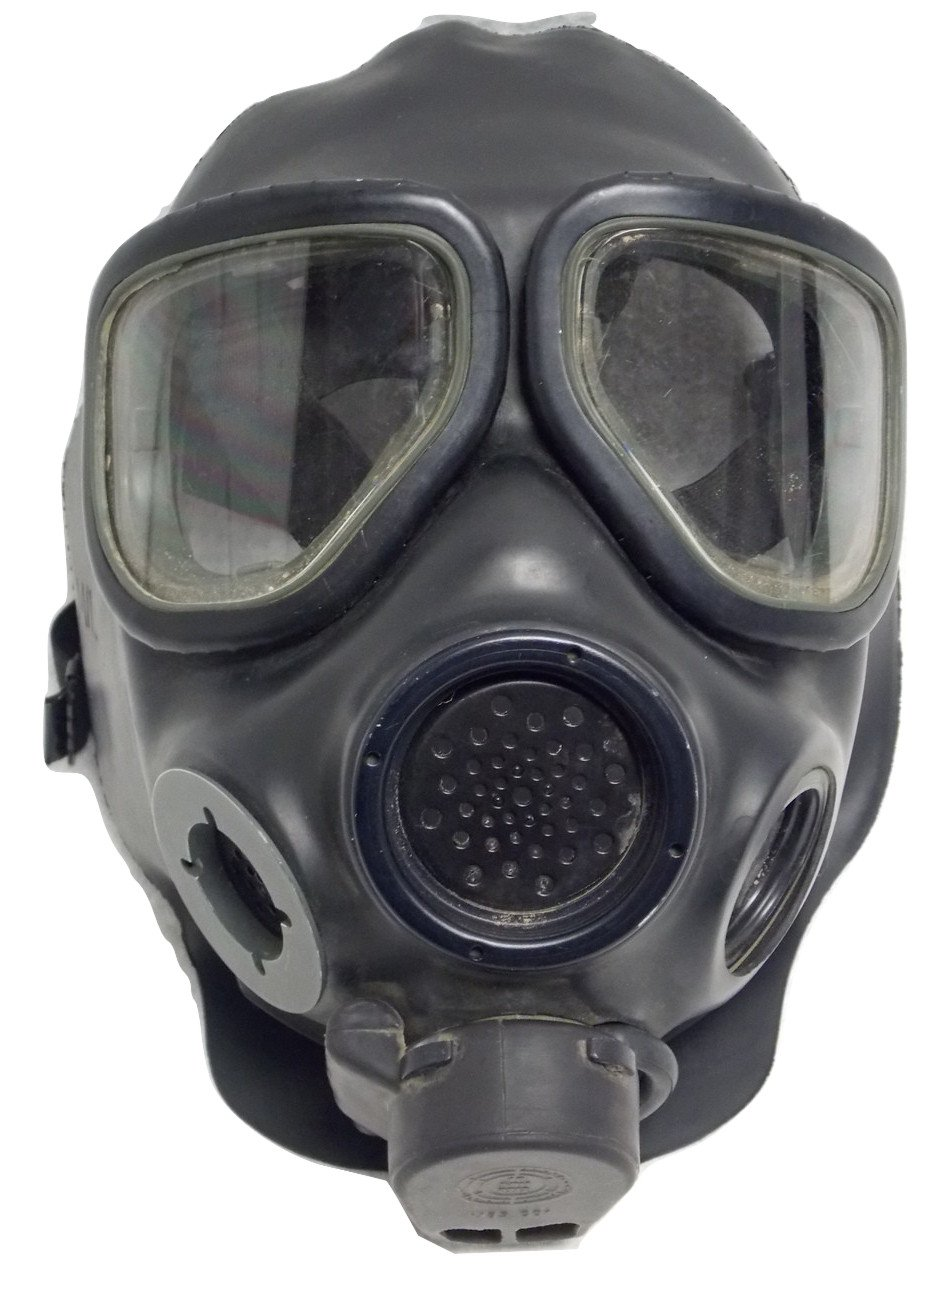 3M FULL FACE RESPIRATOR FR-M40 GAS MASK SIZE LARGE